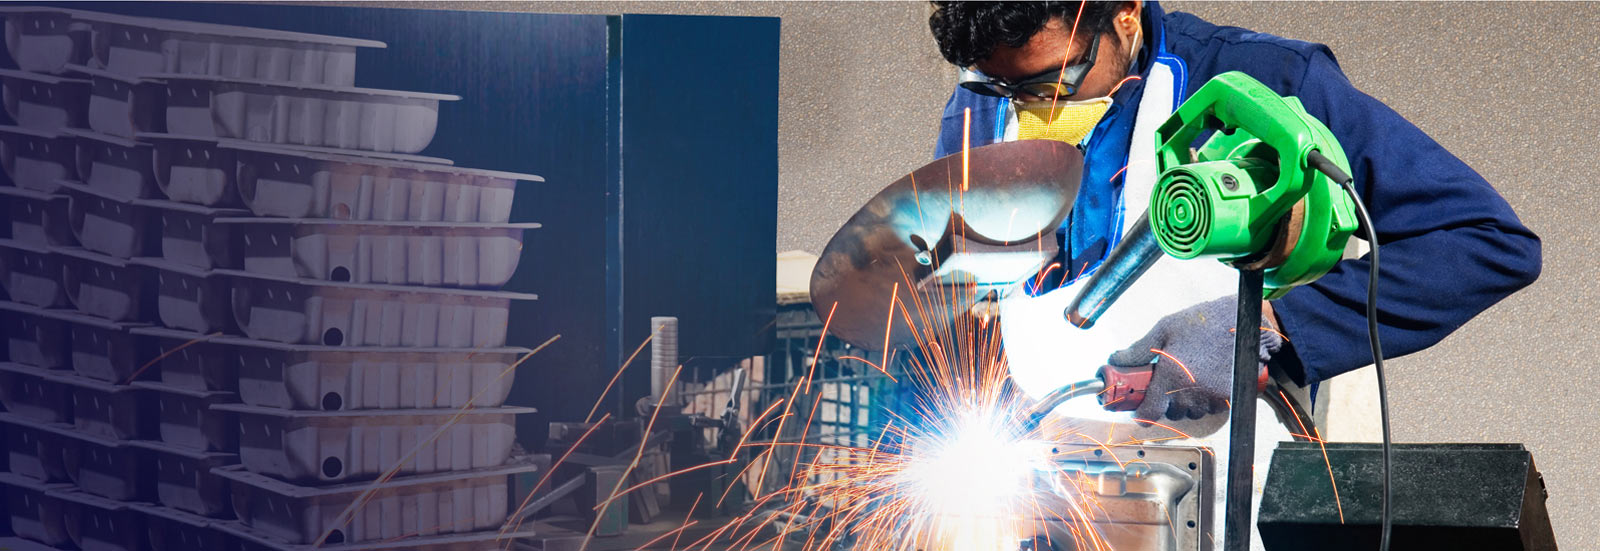 Sheet Metal Fabrication Shop